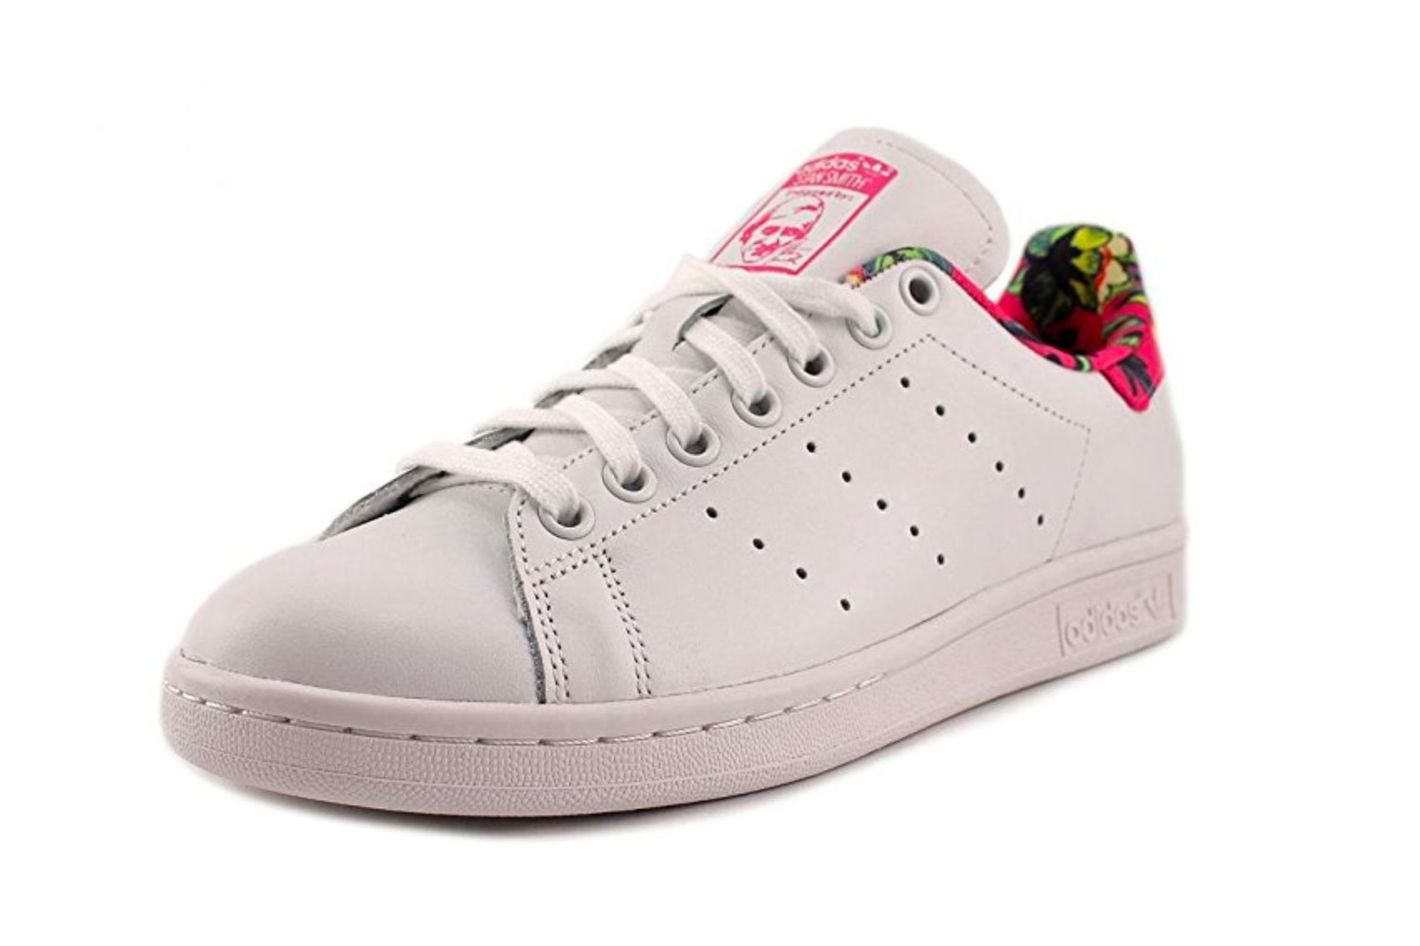 buy online c3e33 3cd60 Adidas x FARM Stan Smiths